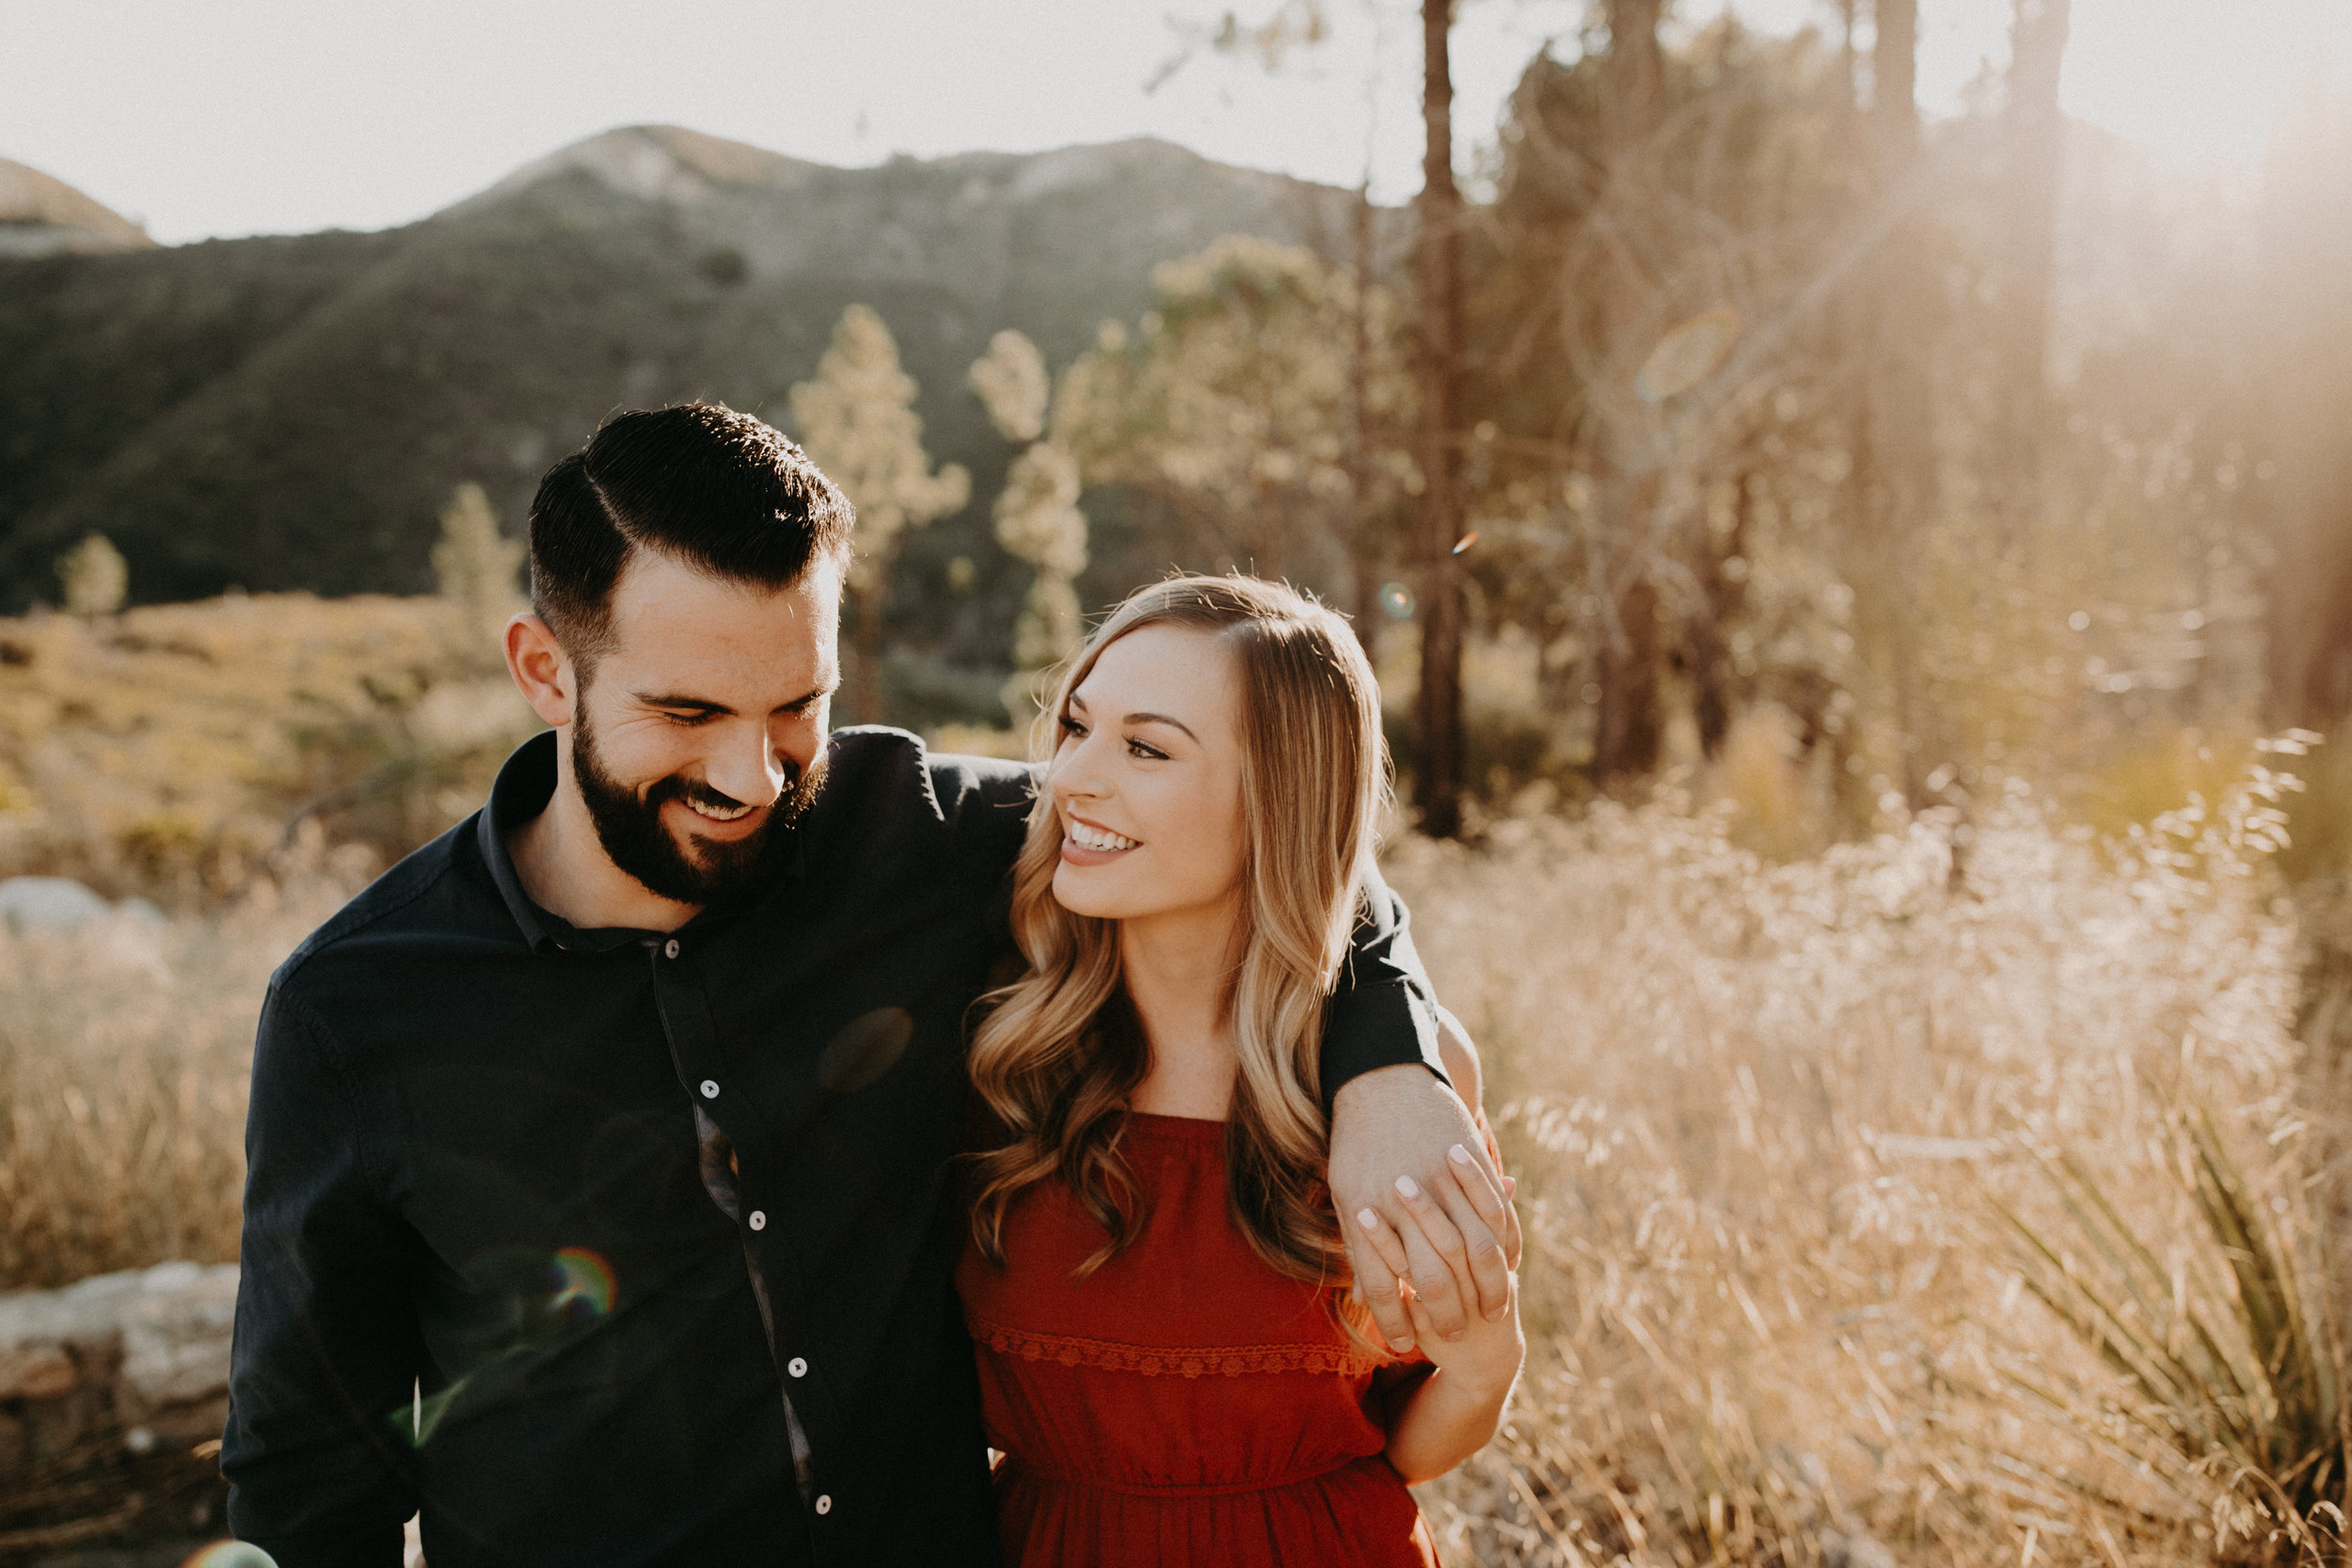 Los Angeles Engagement Session Matt & Shayna Emily Magers Photography-59.jpg